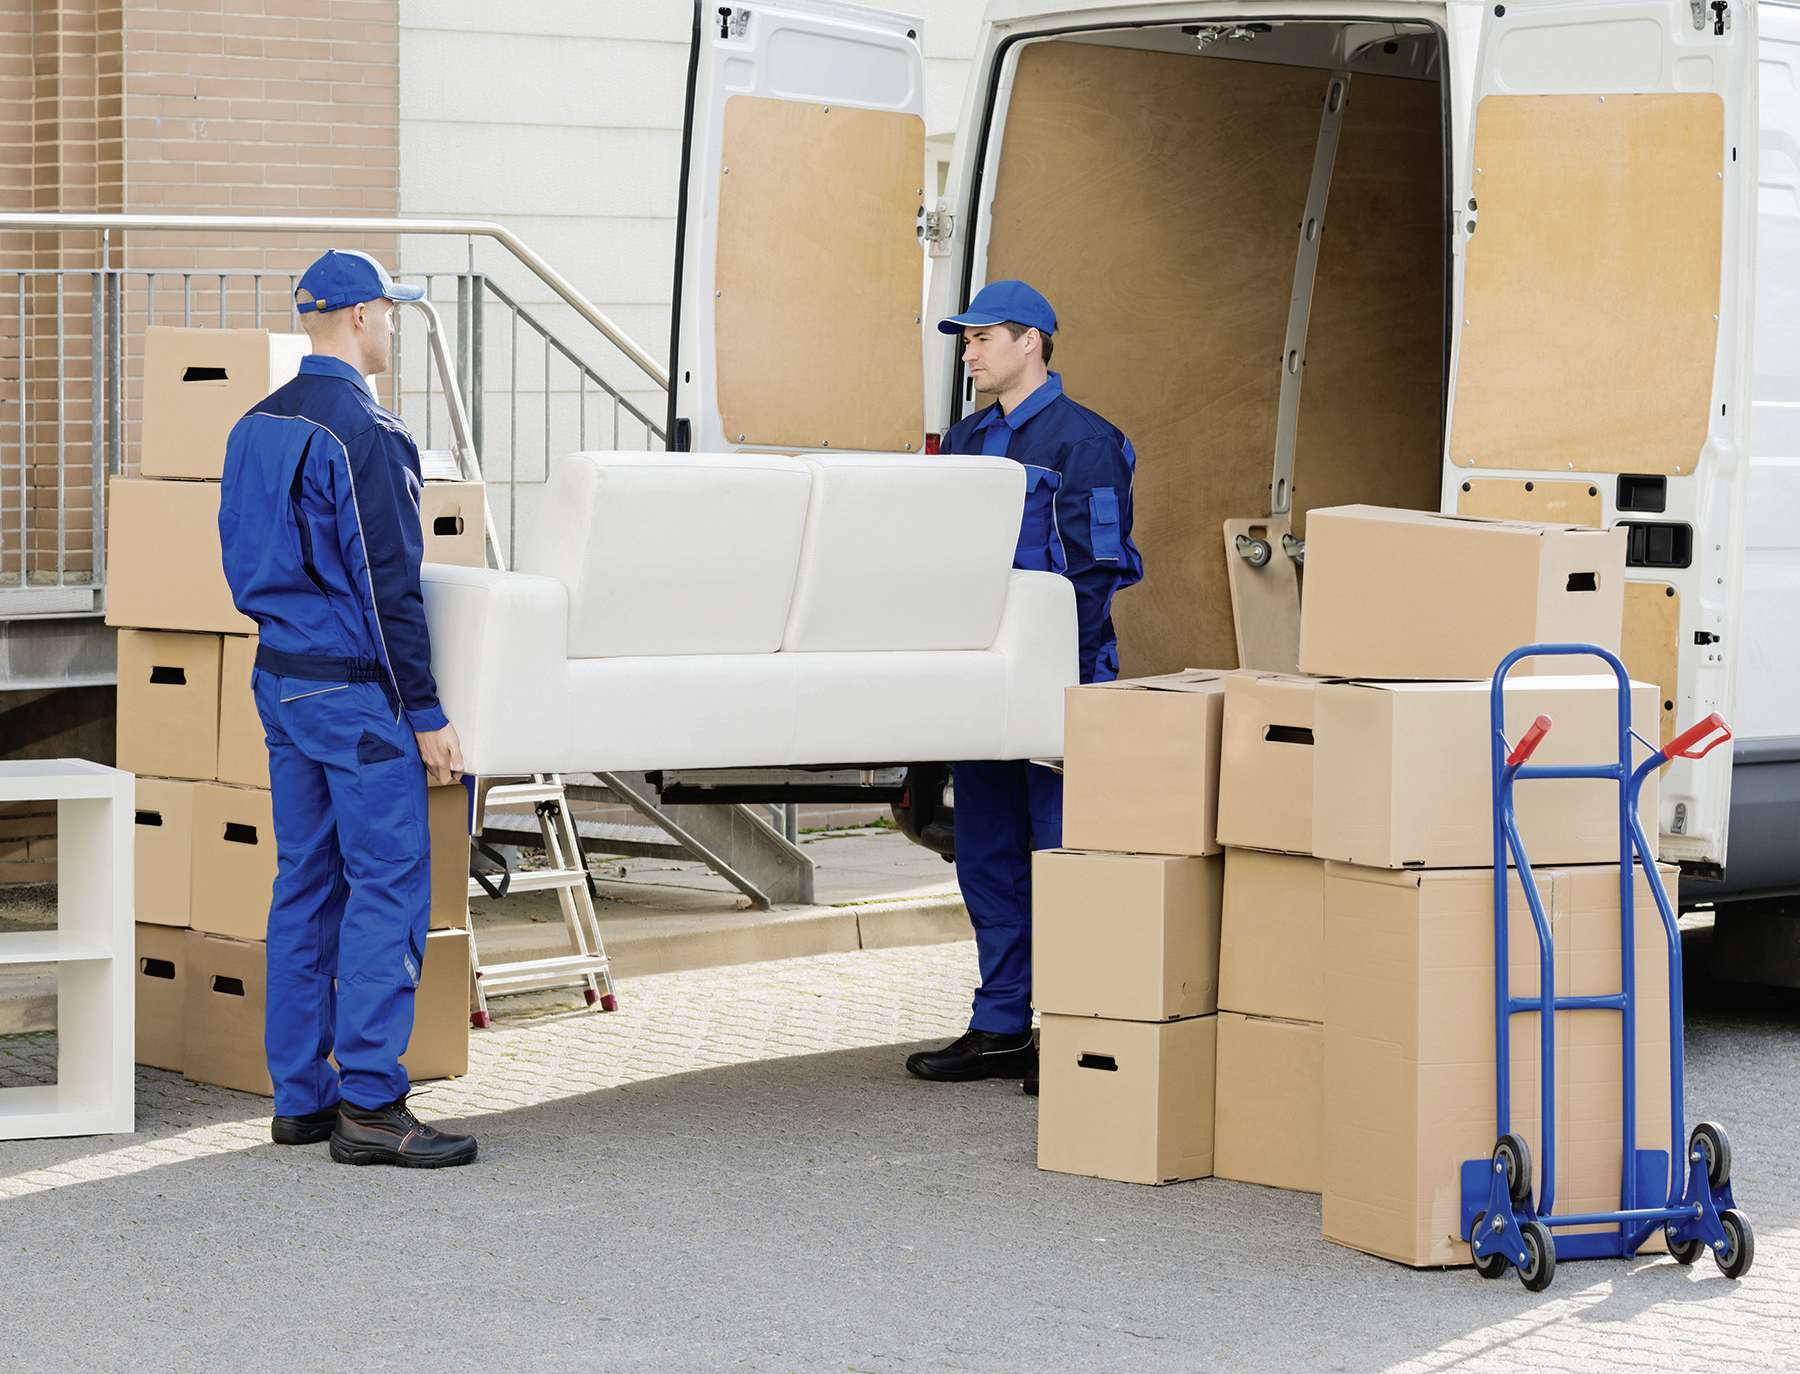 As the busiest time of year for moving approaches, be sure to properly investigate any company you hire to help move your belongings.